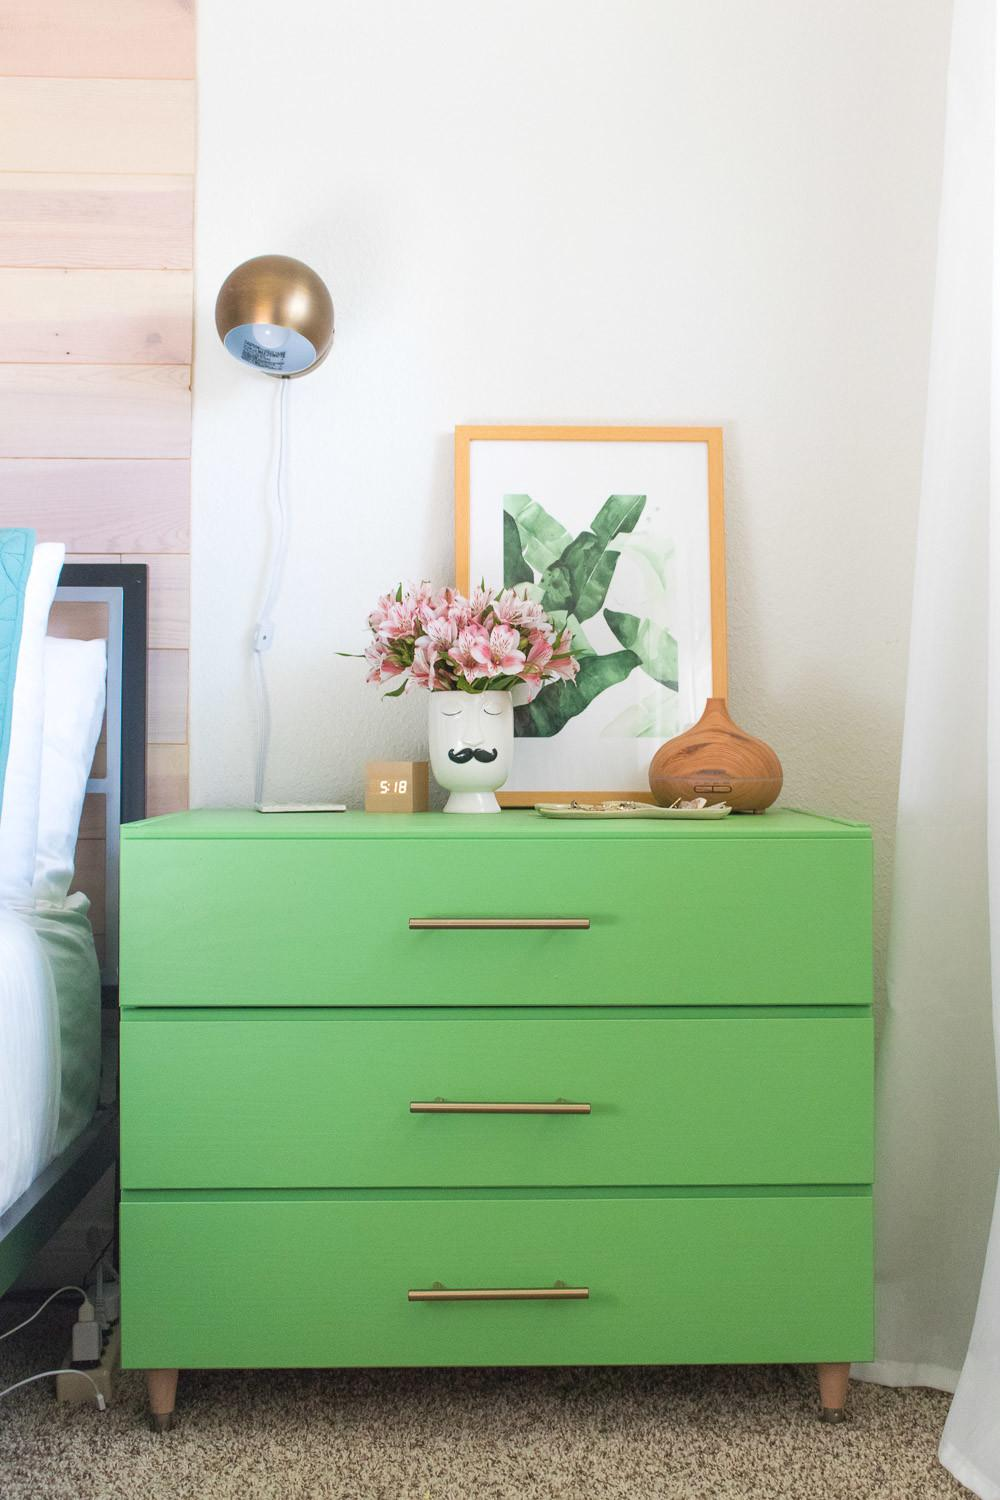 39 Stunning Pictures Of Diy Ikea Dresser Renovation That You Ve Never Heard Of Trends For 2021 Beautiful Decoratorist